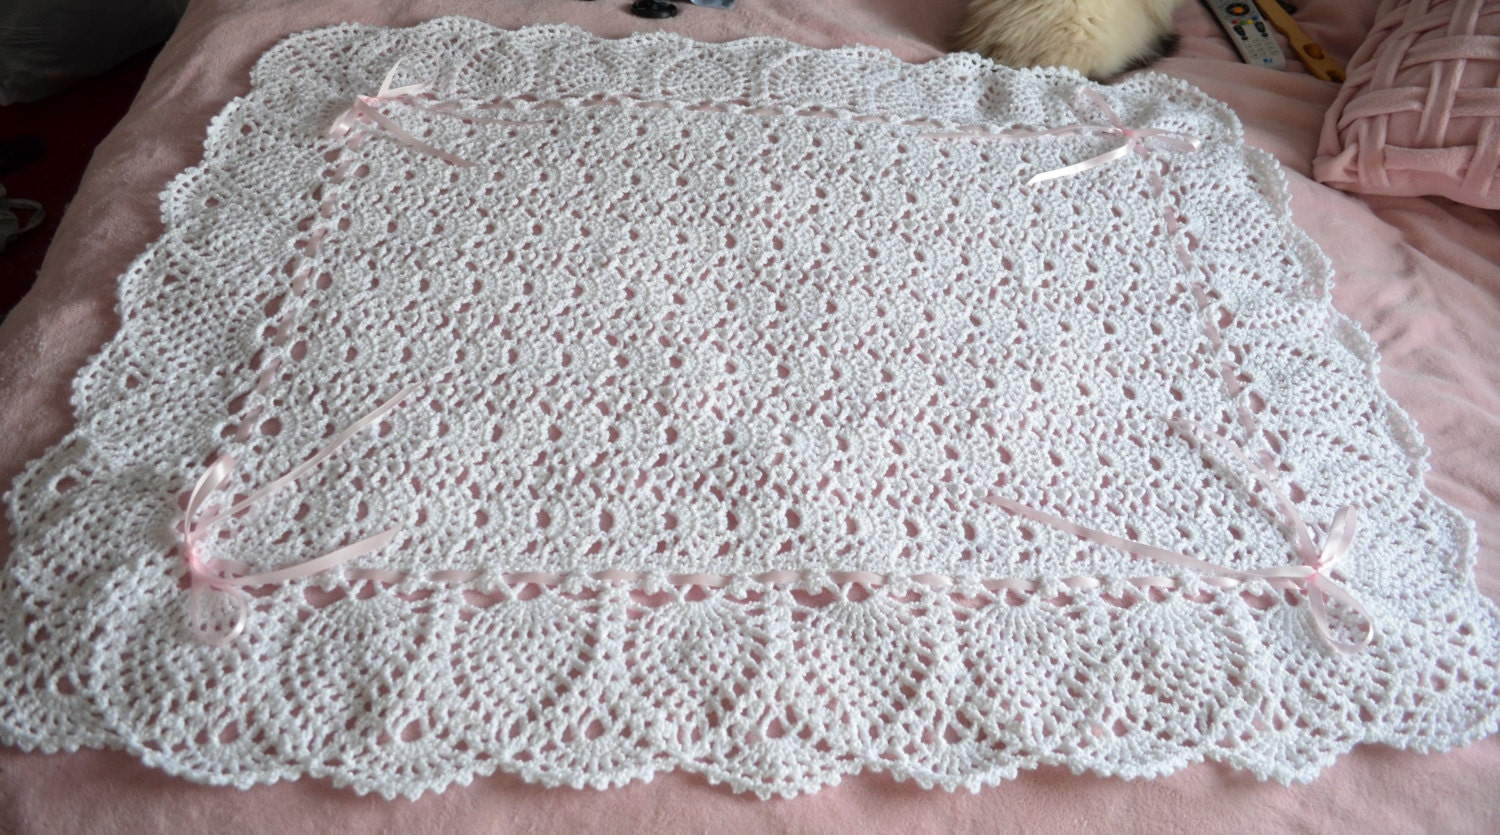 White Lace Crocheted Baby Blanket Afghan Perfect For The